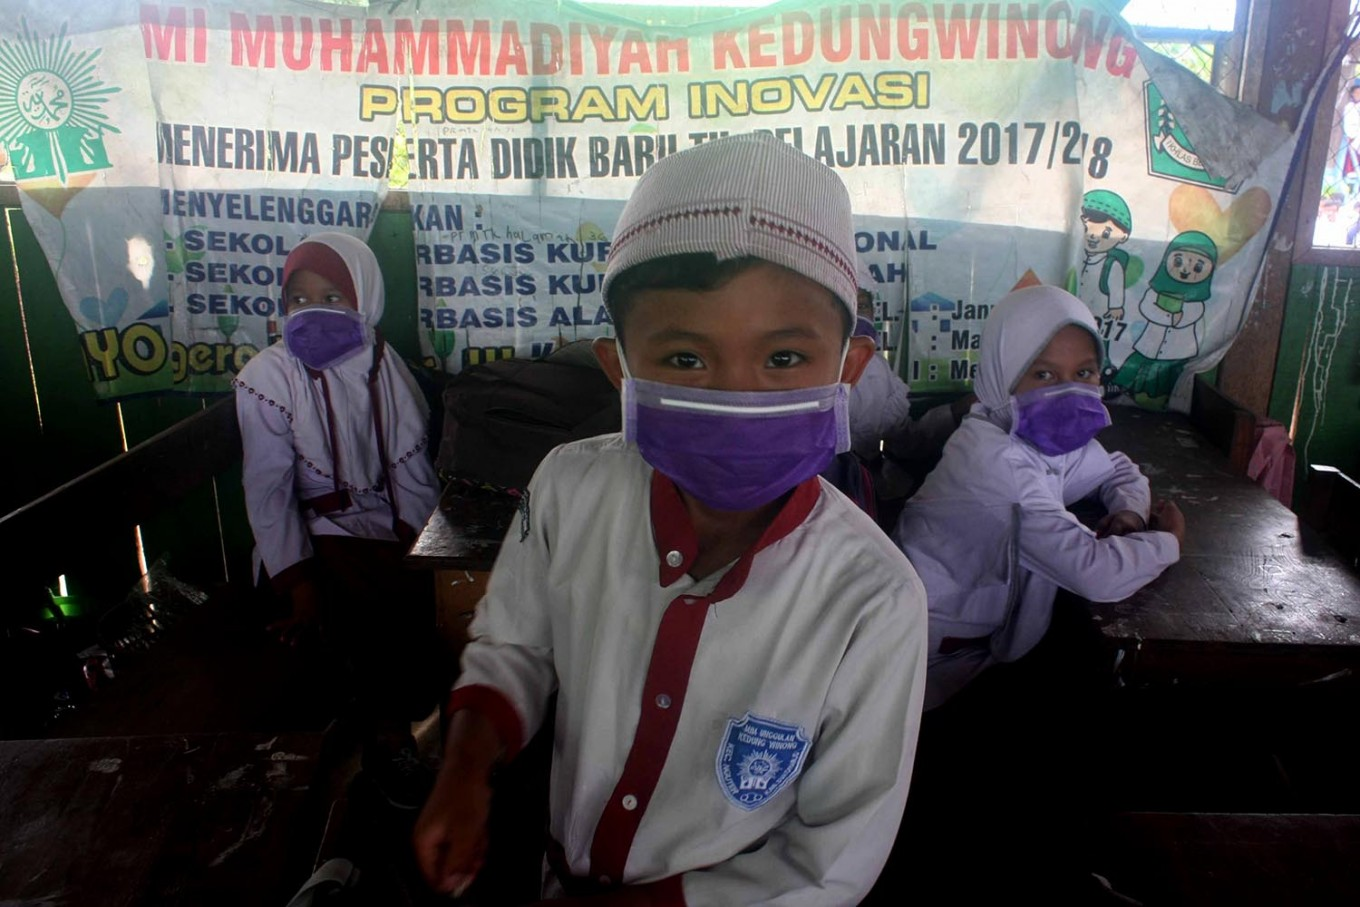 A boy's smile is hidden behind his surgical mask. JP/Maksum Nur Fauzan